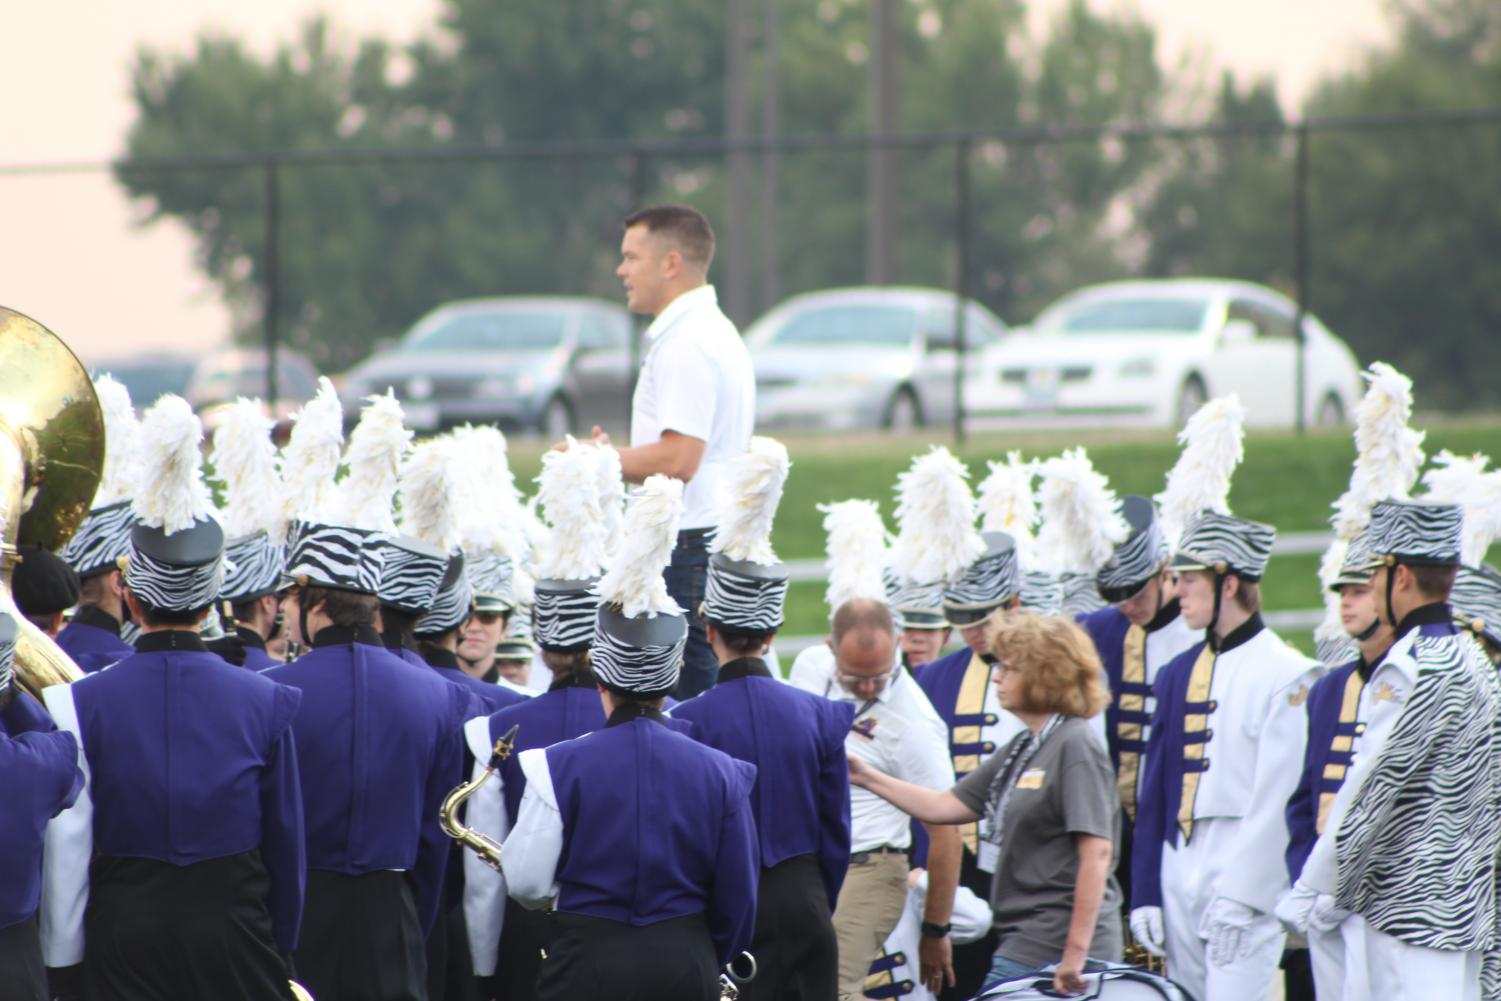 Jeffery Robilliard, Band Director, gives the varsity marching band a pep talk. Robilliard delivers one of these pep talks before every performance.